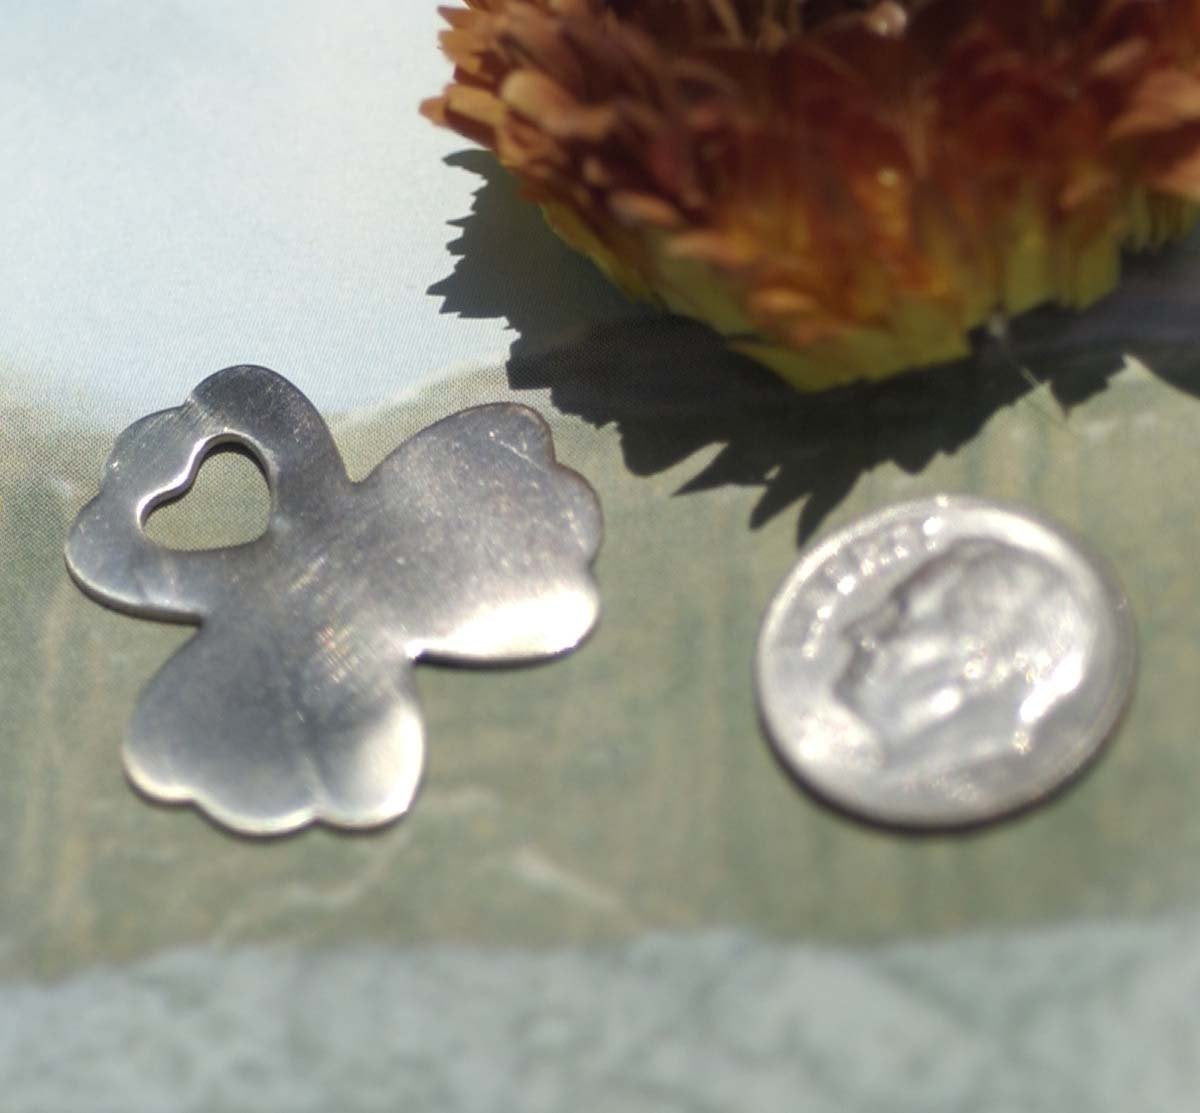 Nickel Silver Clover Flower with Heart Blank for Metalworking Stamping Texturing Blanks Soldering